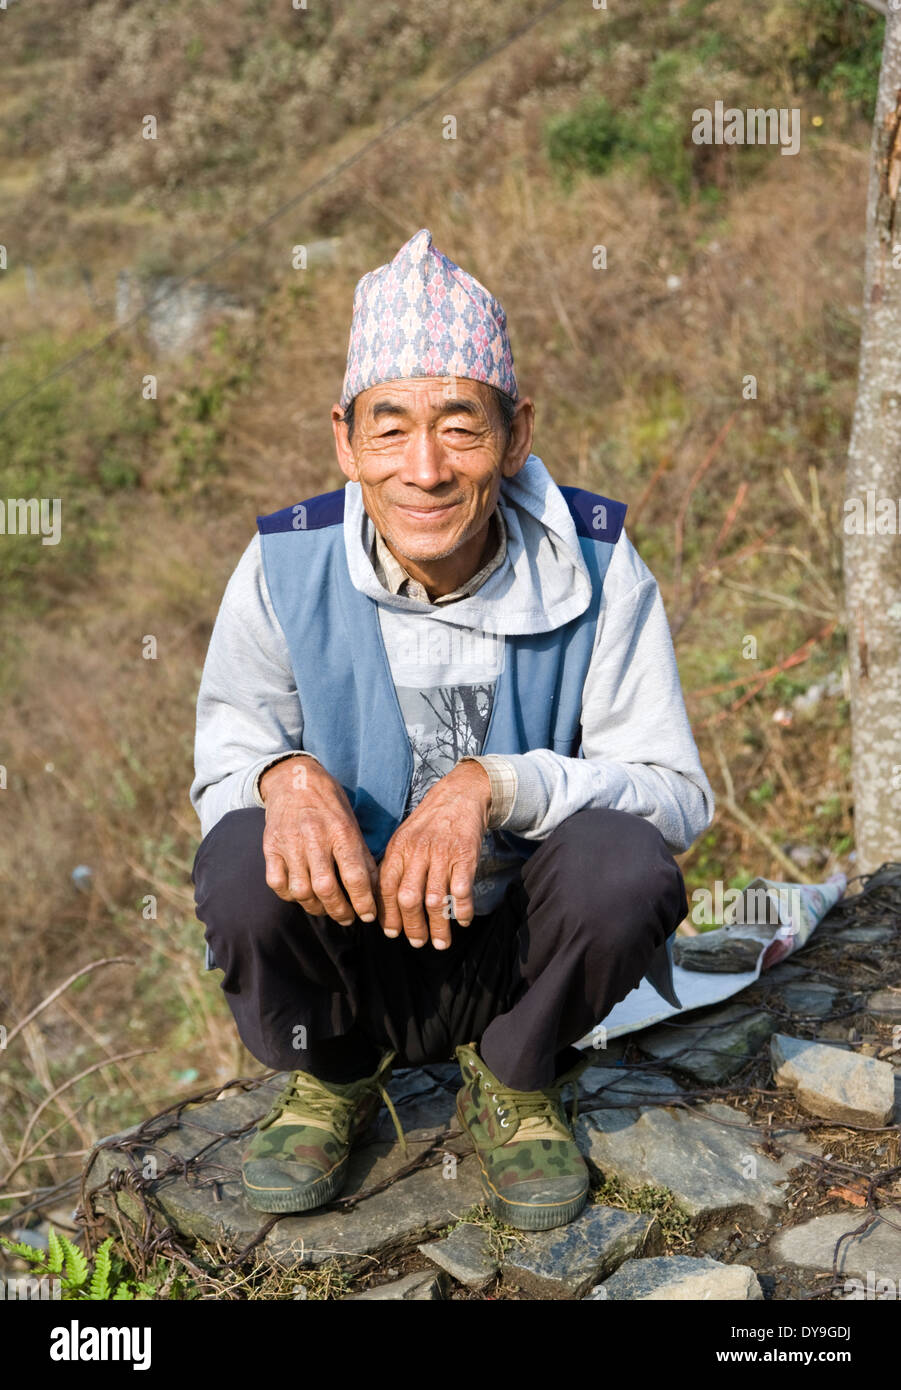 Nepali man wearing traditional Dhaka topi hat, Sarangkot, Nepal. - Stock Image